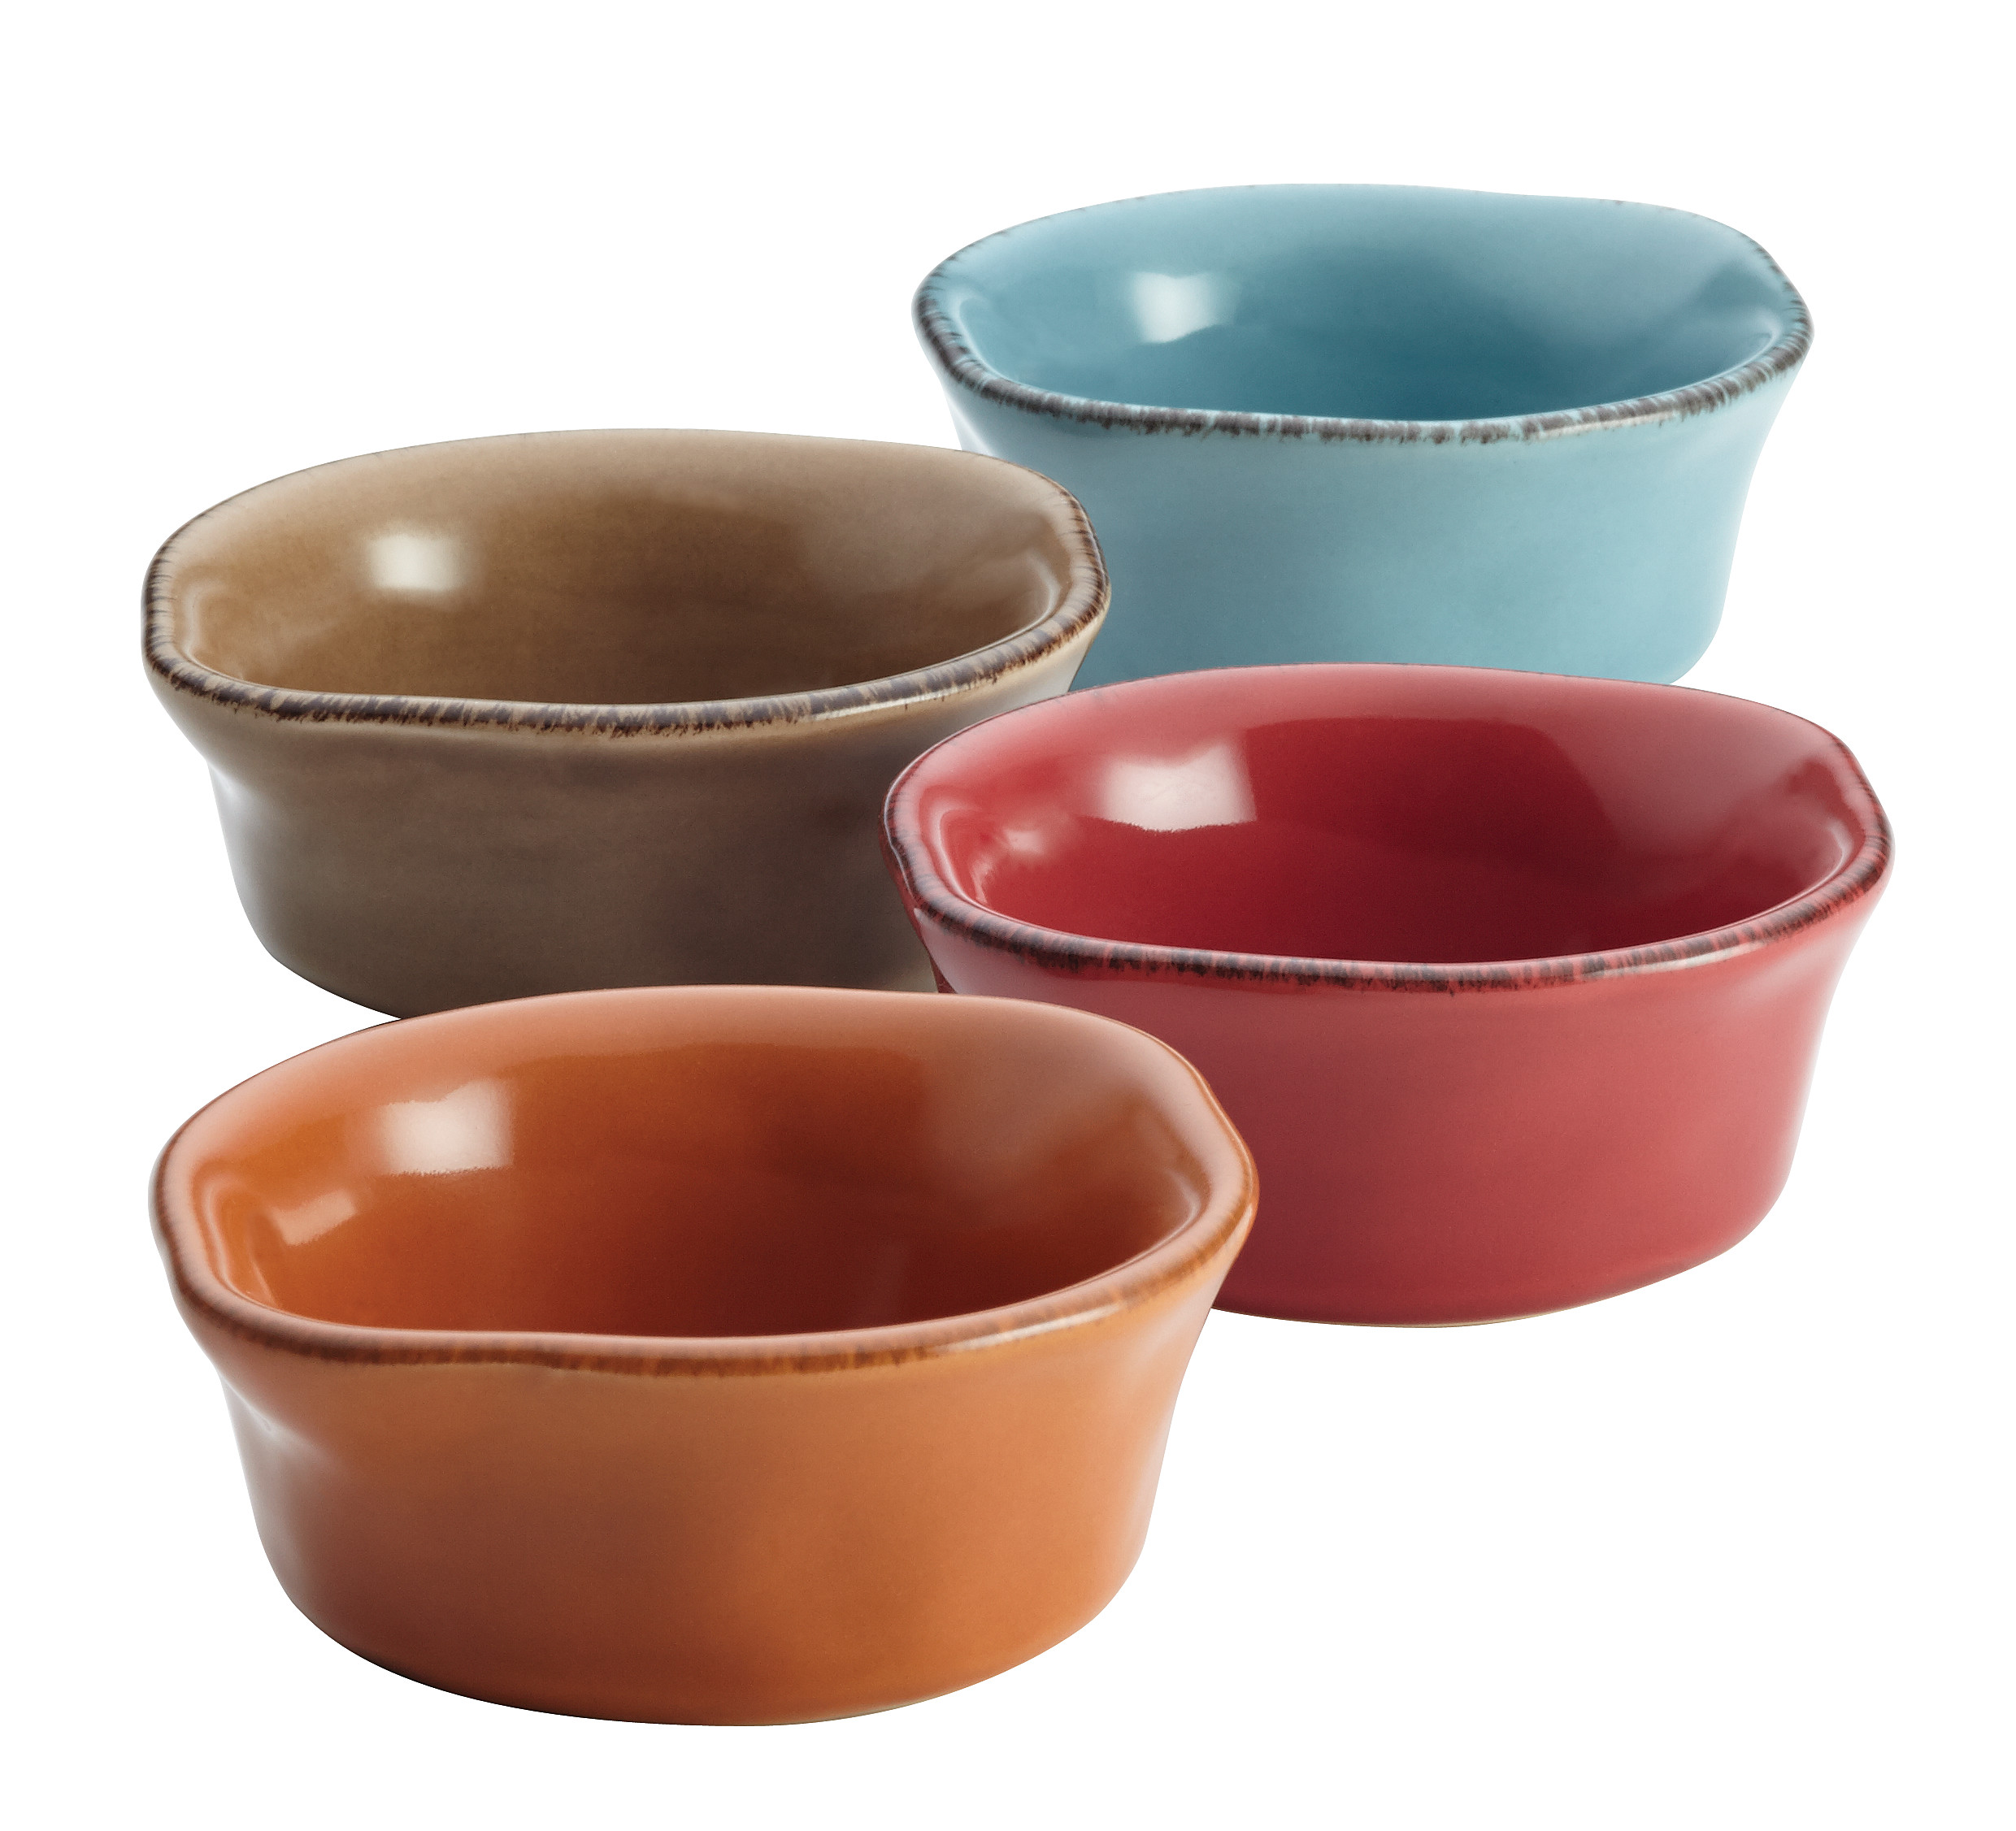 Rachael Ray Cucina Stoneware 4-Piece Dipping Cup Set, Assorted